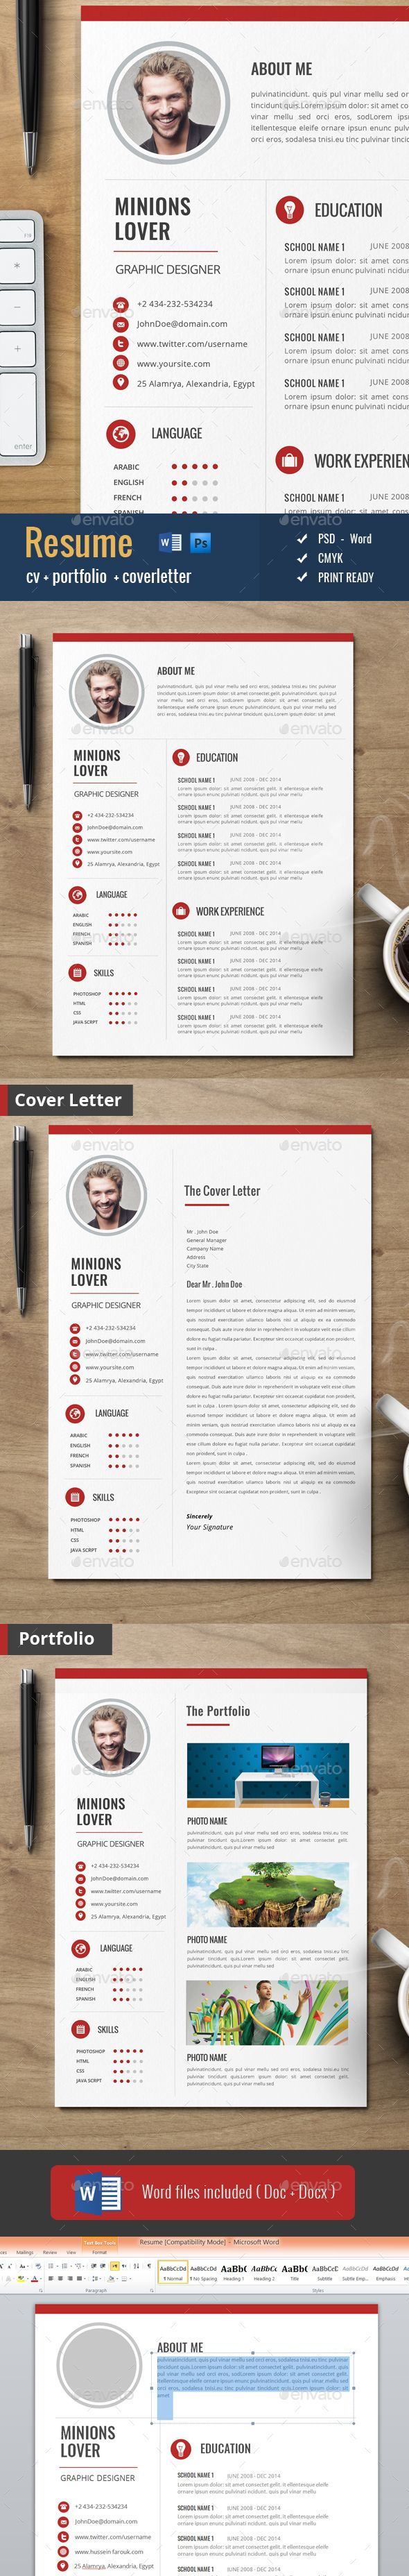 30 Resume Templates for MAC Free